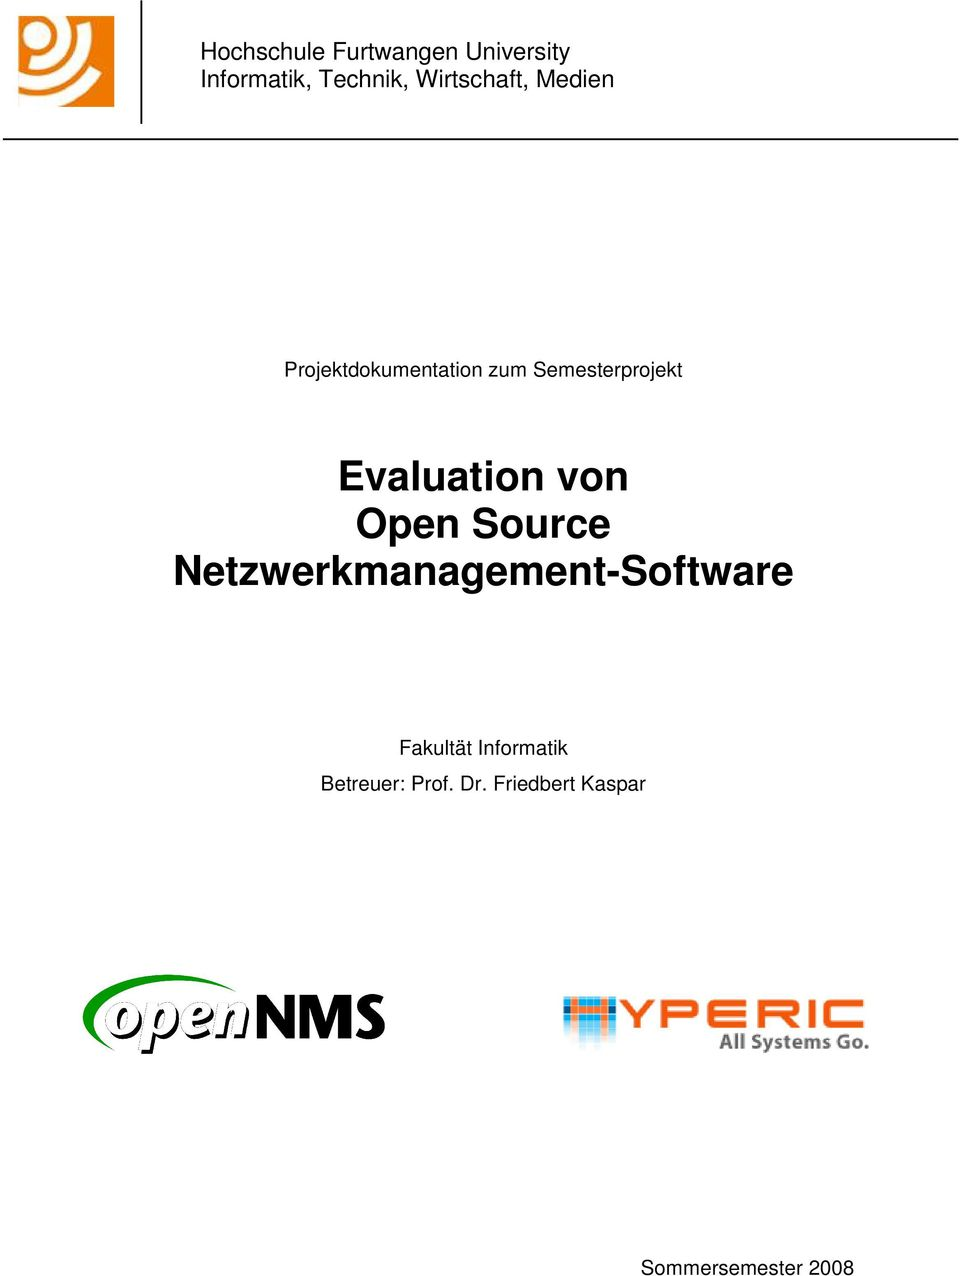 Evaluation von Open Source Netzwerkmanagement-Software